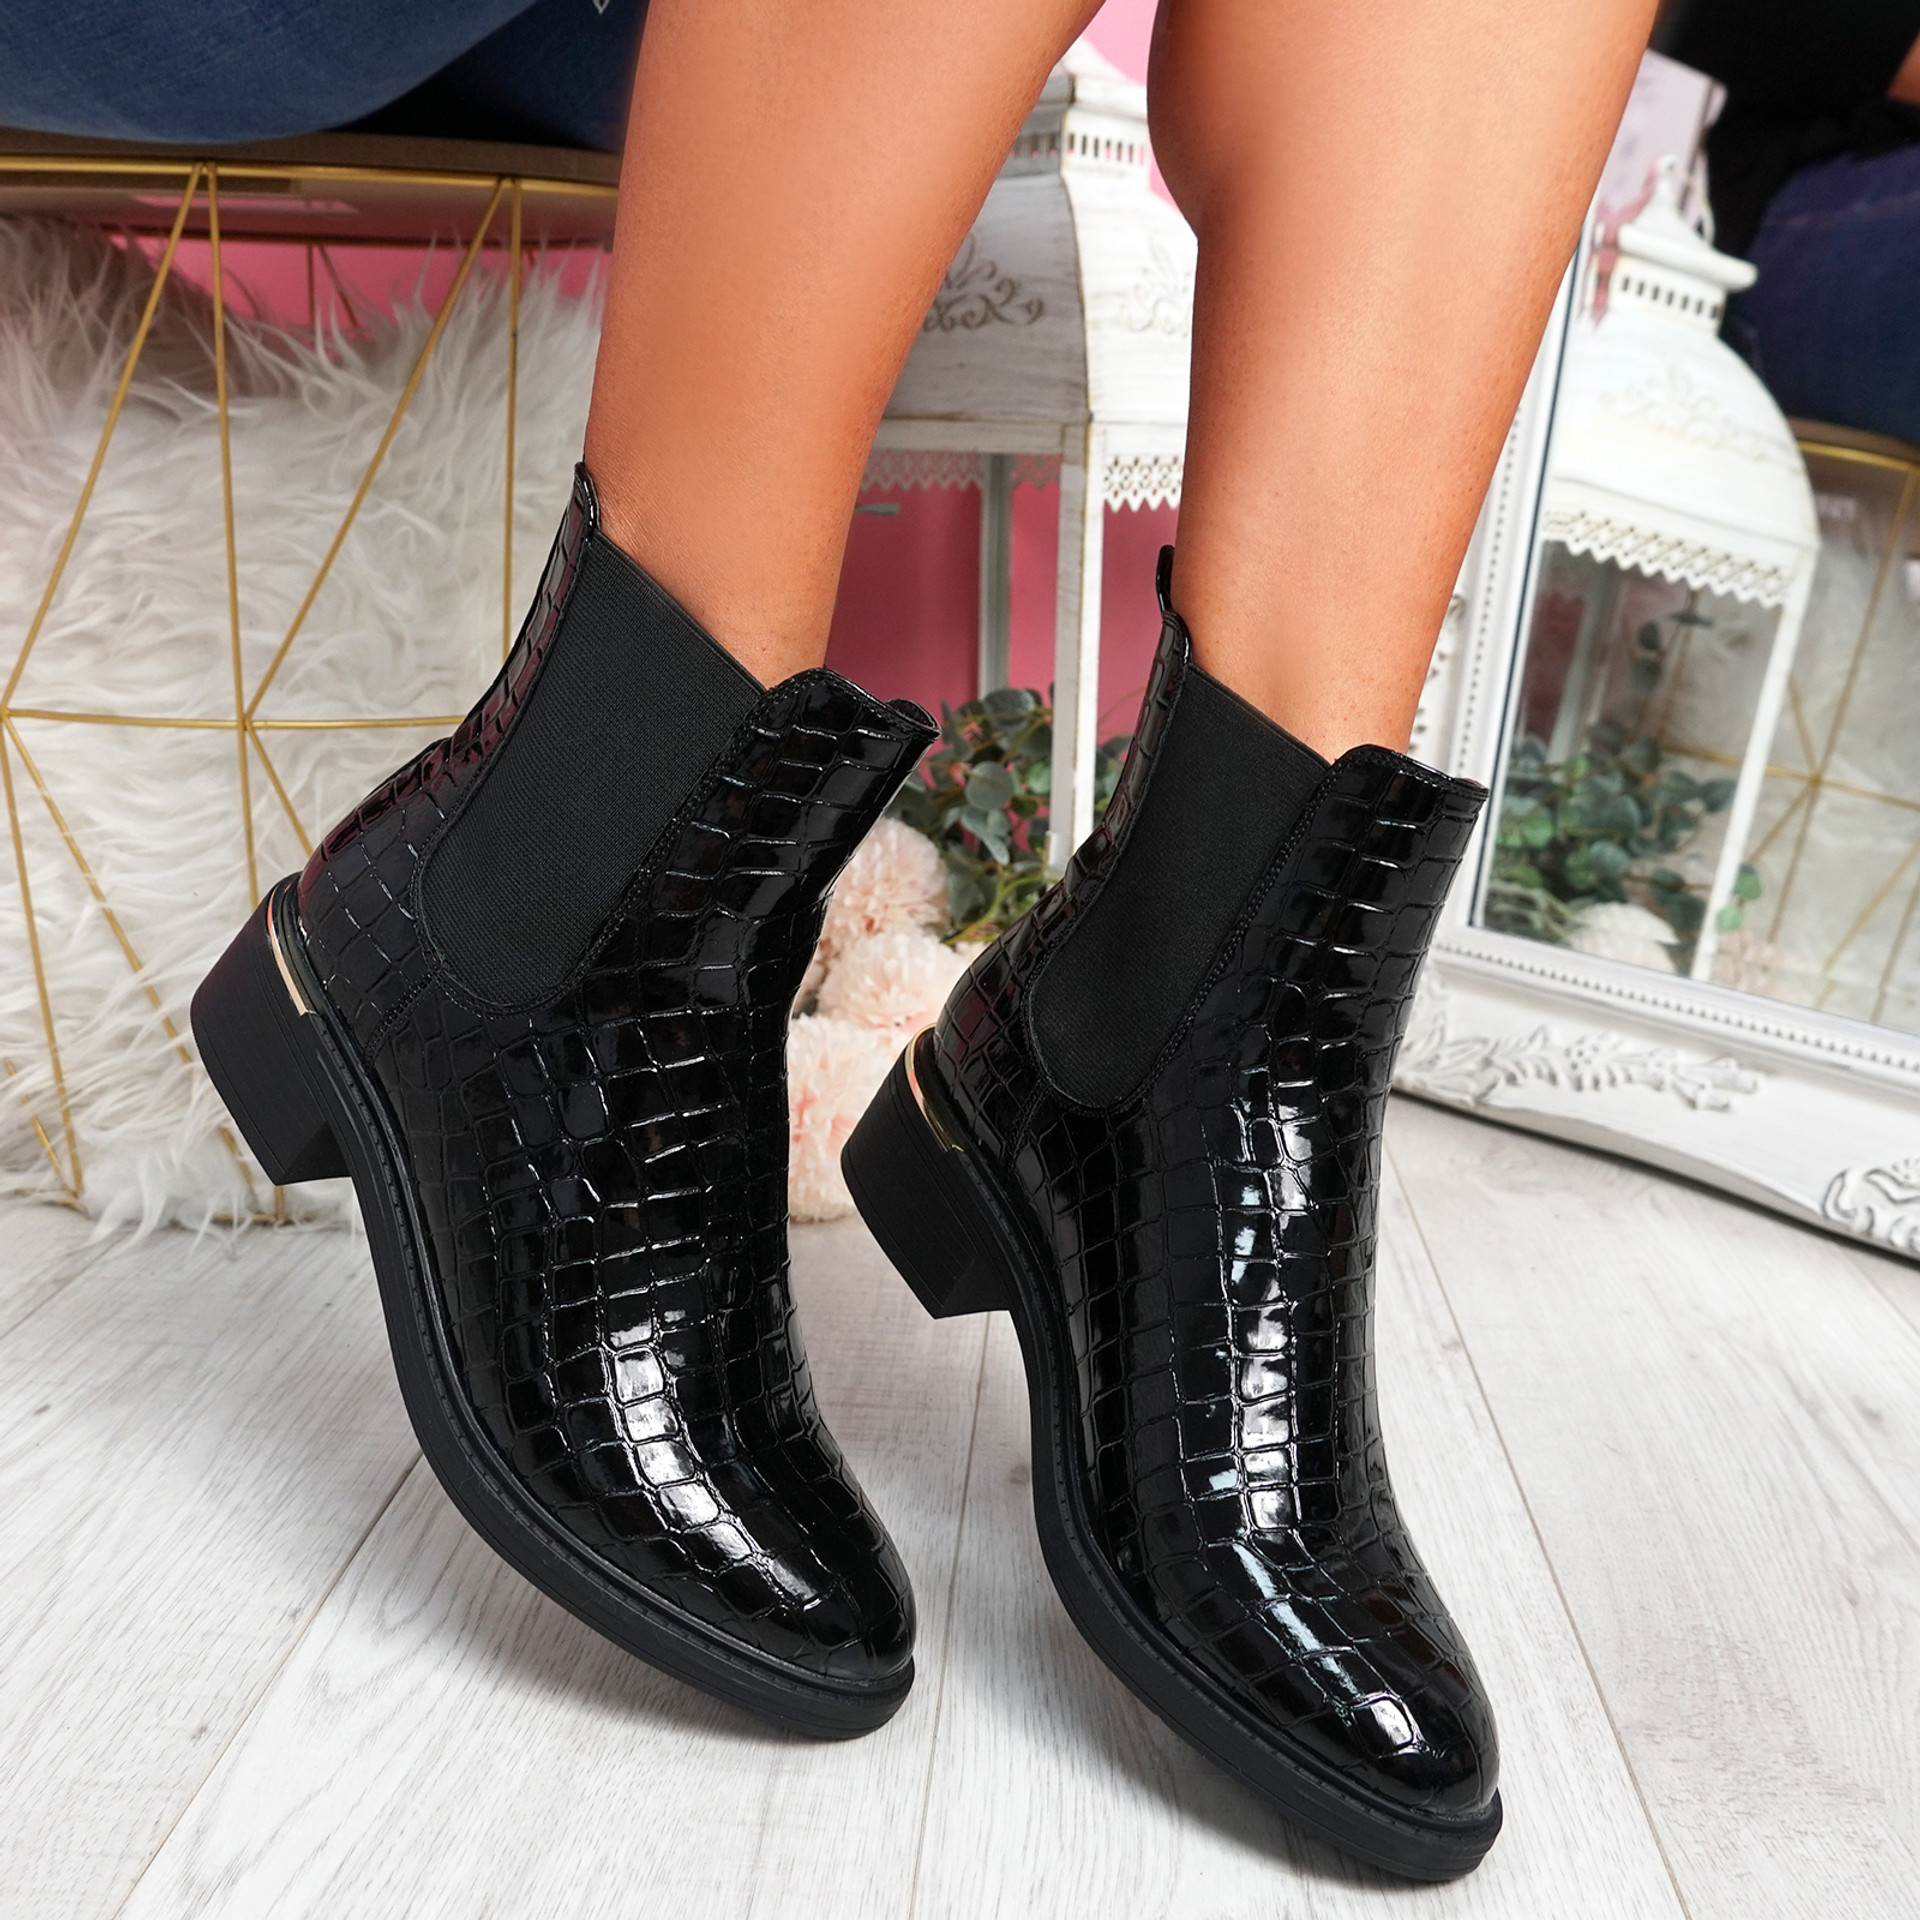 Fenny Black Croc Chelsea Ankle Boots